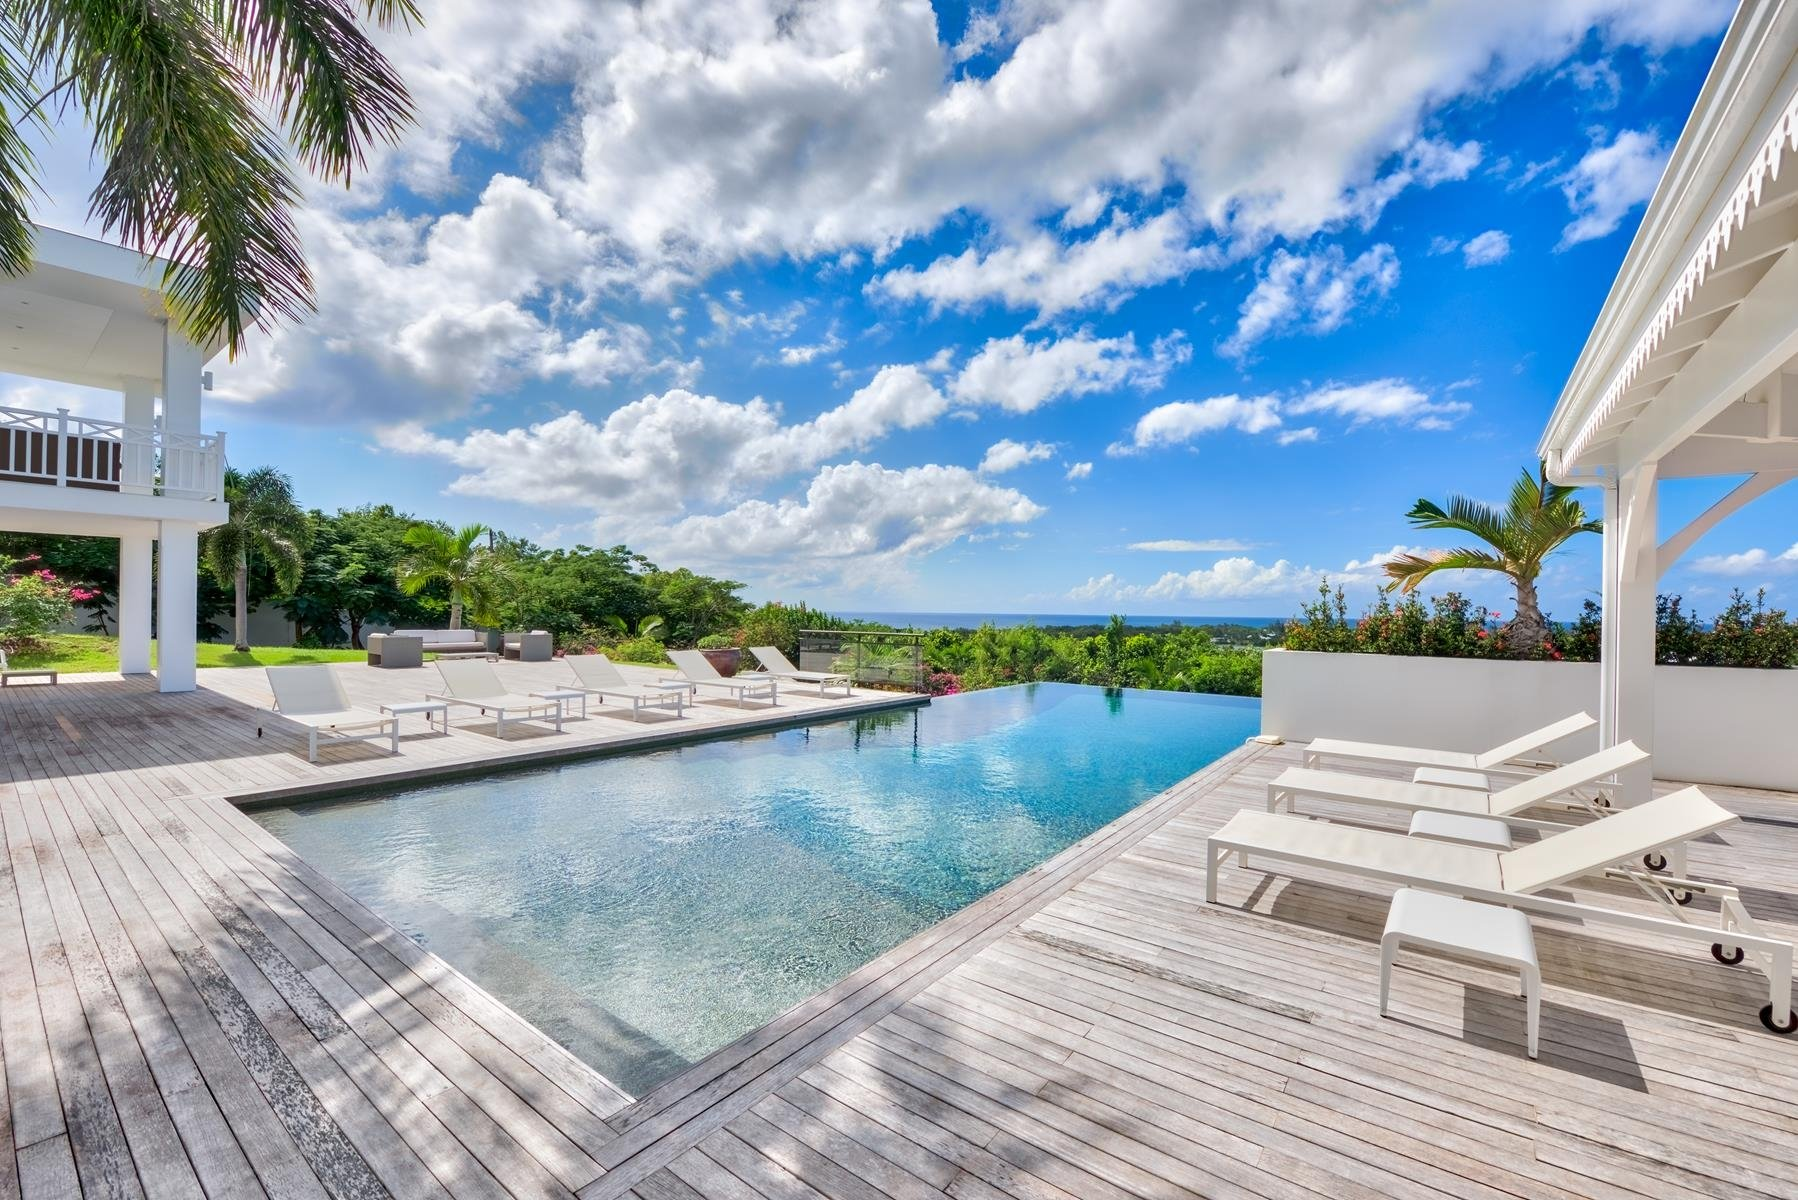 Luxury villa rentals caribbean - St martin - Saint martin french - Les terres basses - Always - Image 1/23